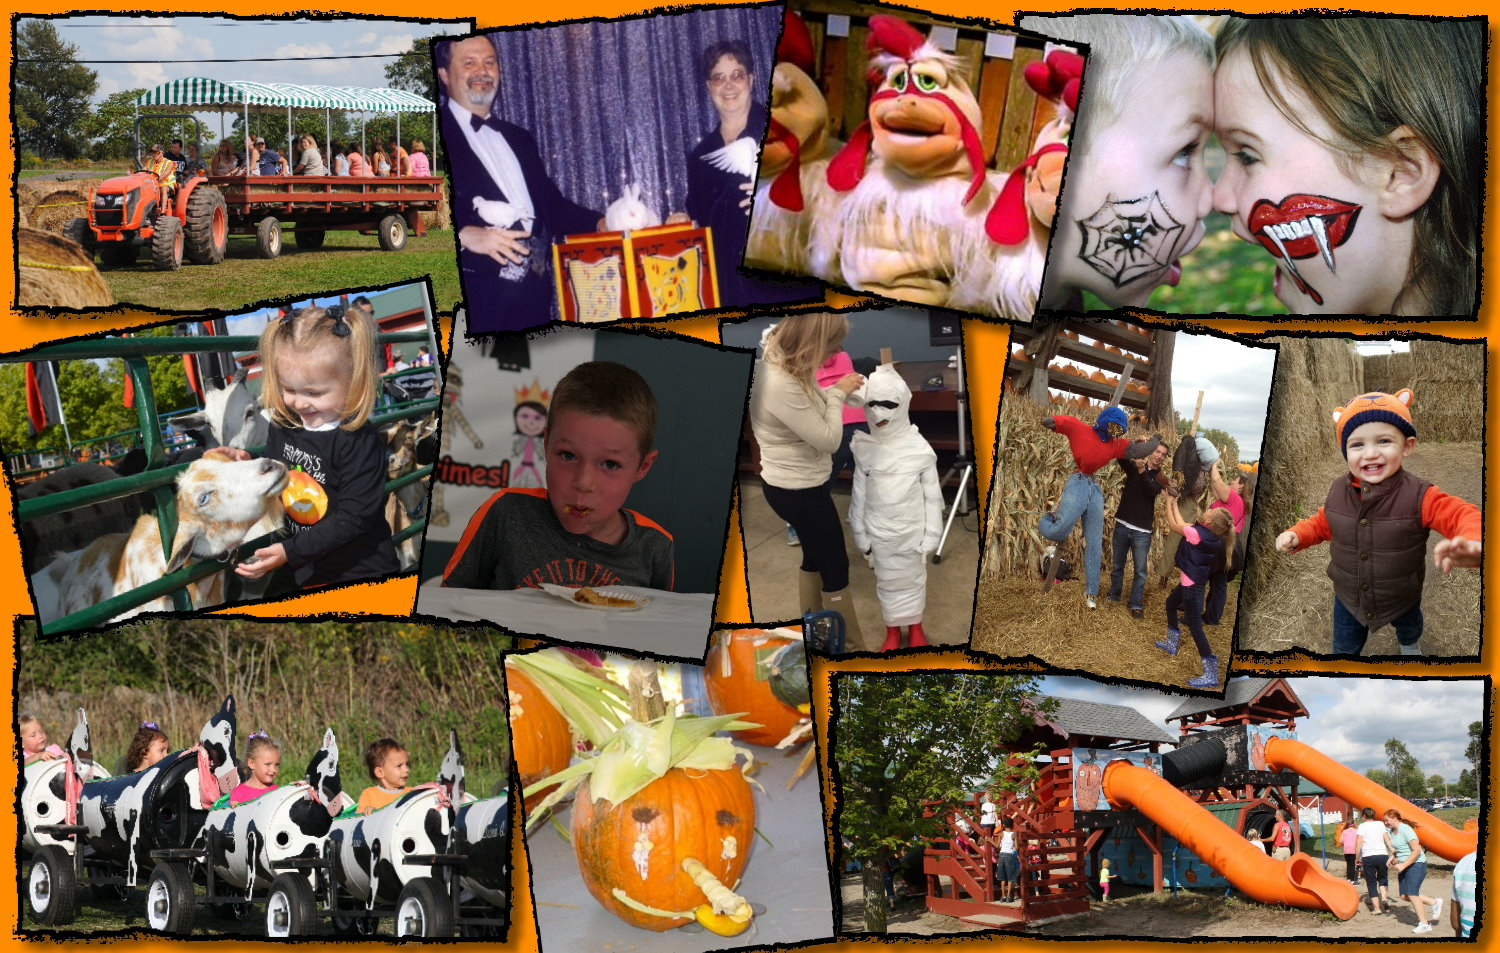 Family fun can be found at the Great Pumpkin Farm in Clarence. (Photos courtesy of Great Pumpkin Farm)